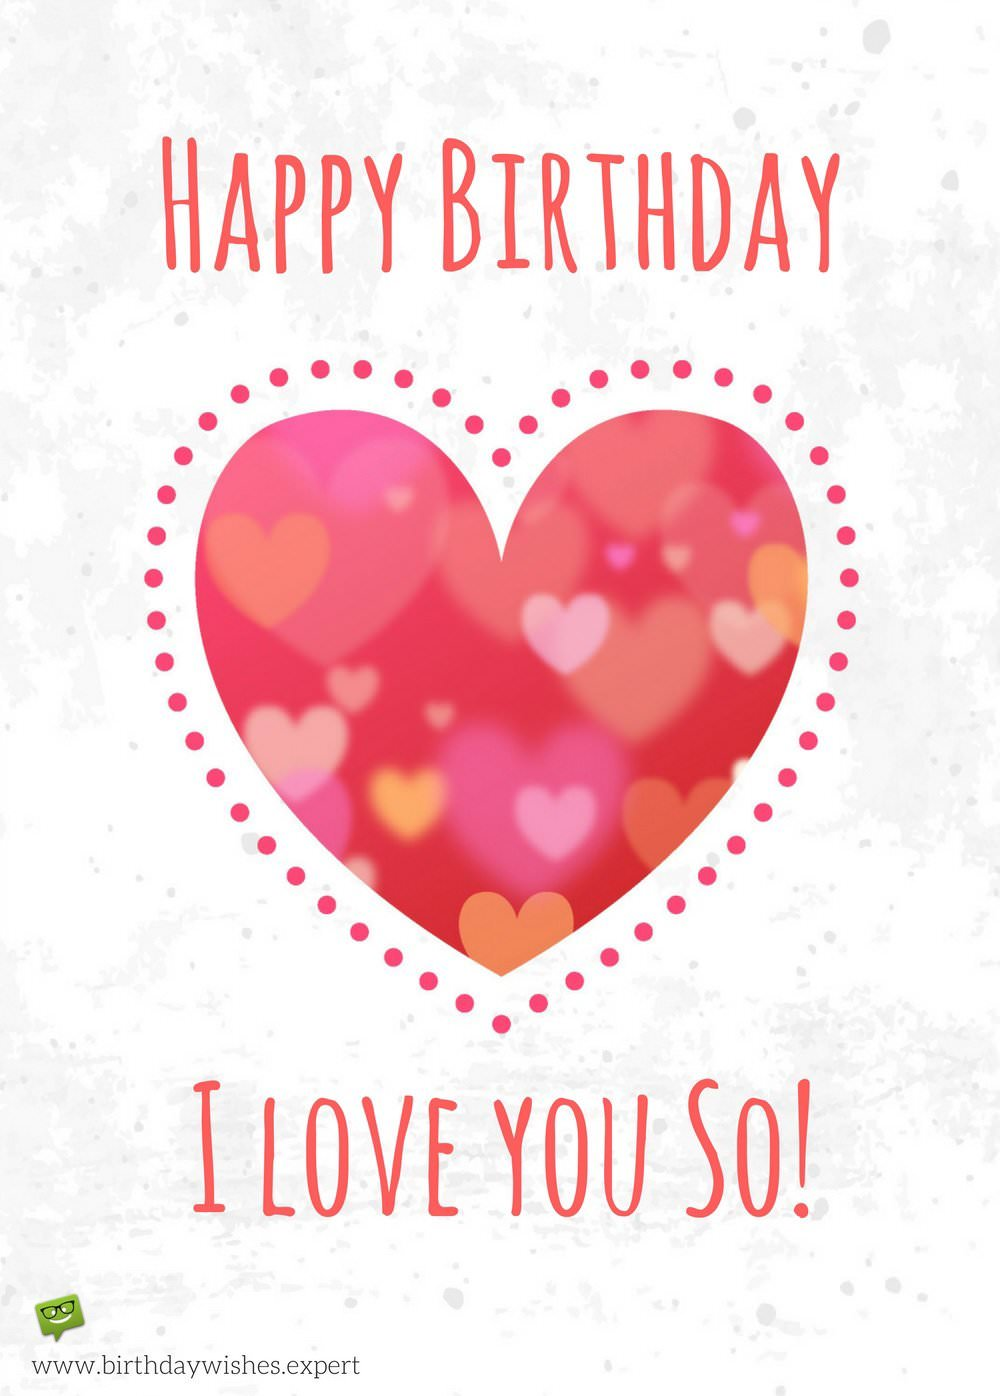 happy birthday wifey ; Happy-Birthday-wish-for-wife-on-image-with-a-big-red-heart-drawn-on-old-paper